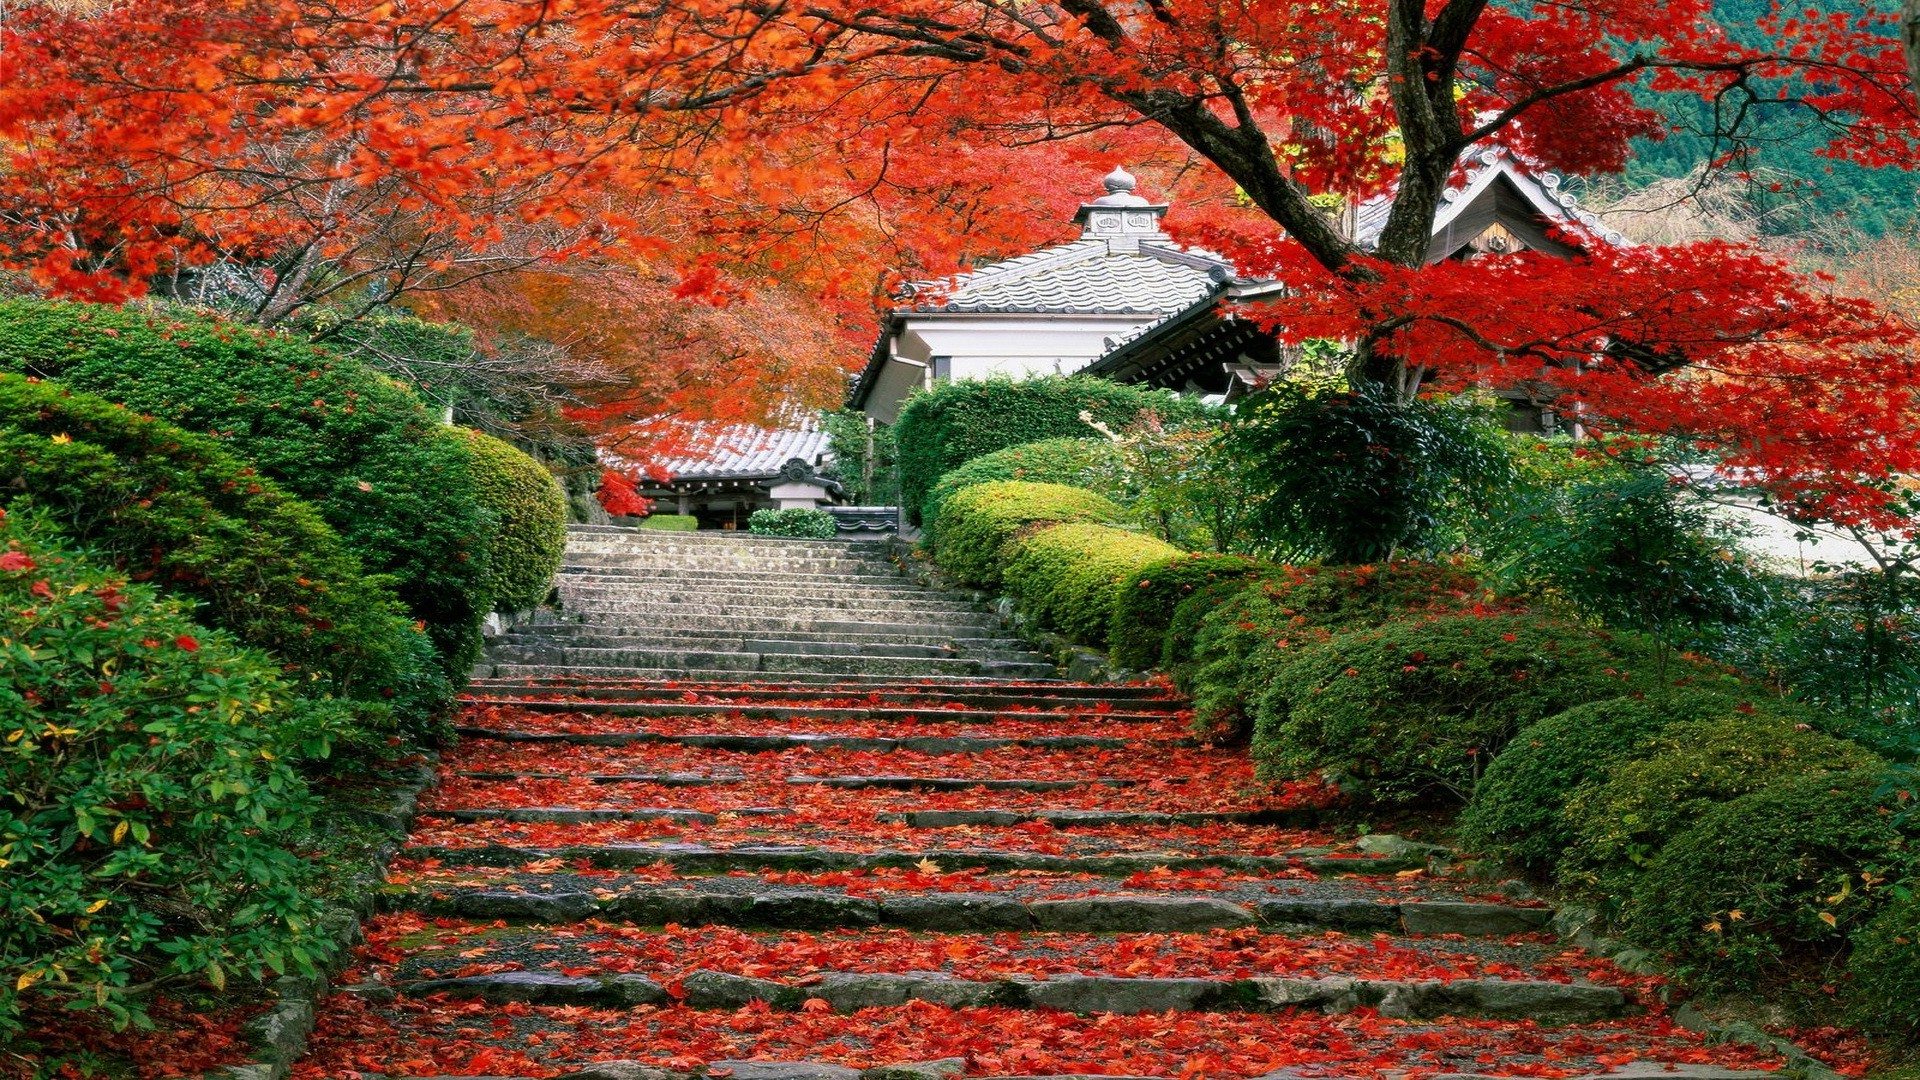 Autumn Tree Leaf Fall Animated Wallpaper Japan Landscape Fall Cherry Trees Stairs Leaves